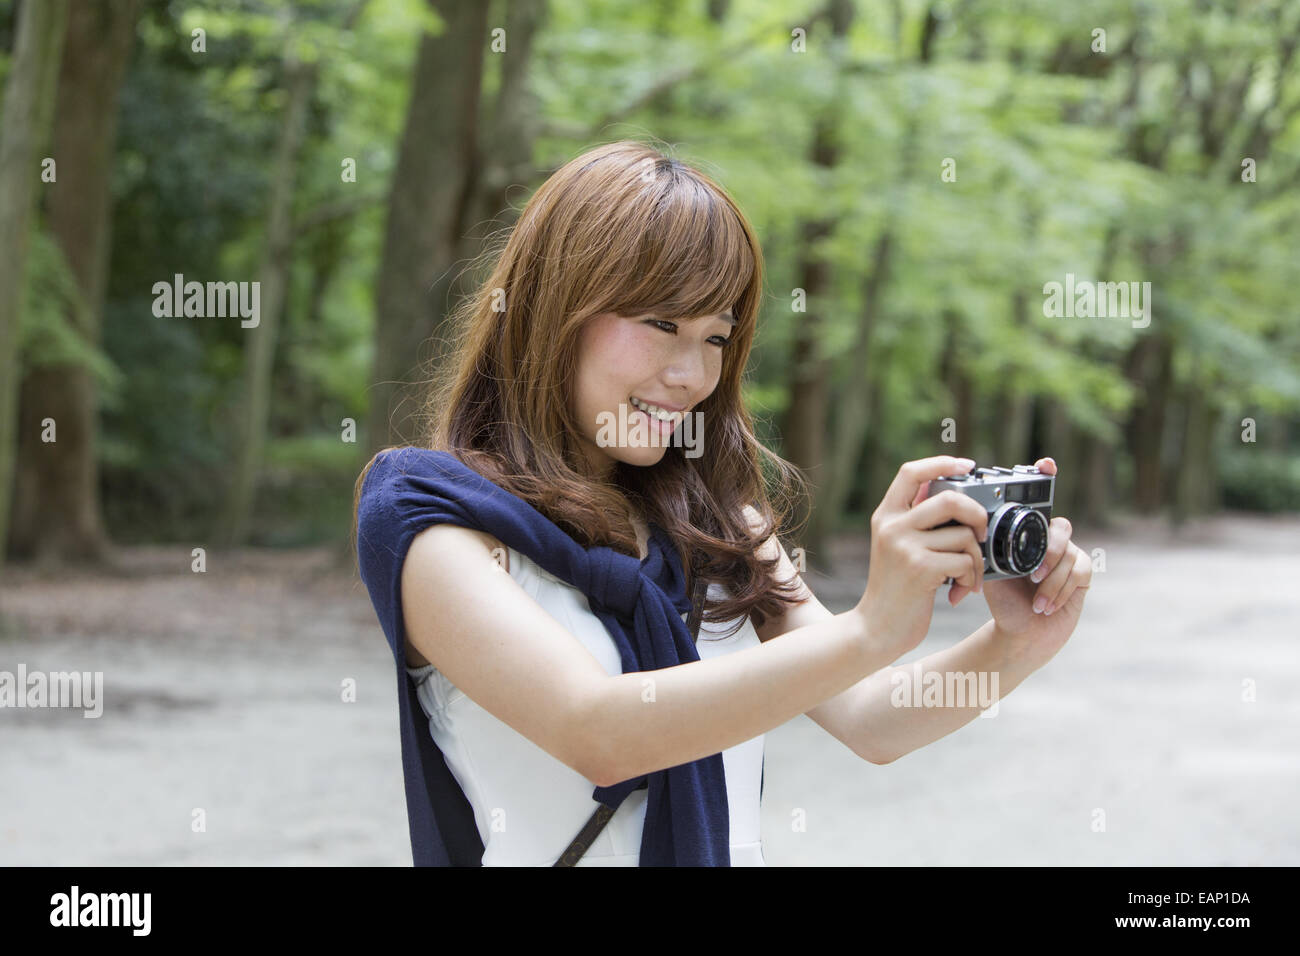 A woman in a Kyoto park holding a camera, preparing to take pictures. - Stock Image